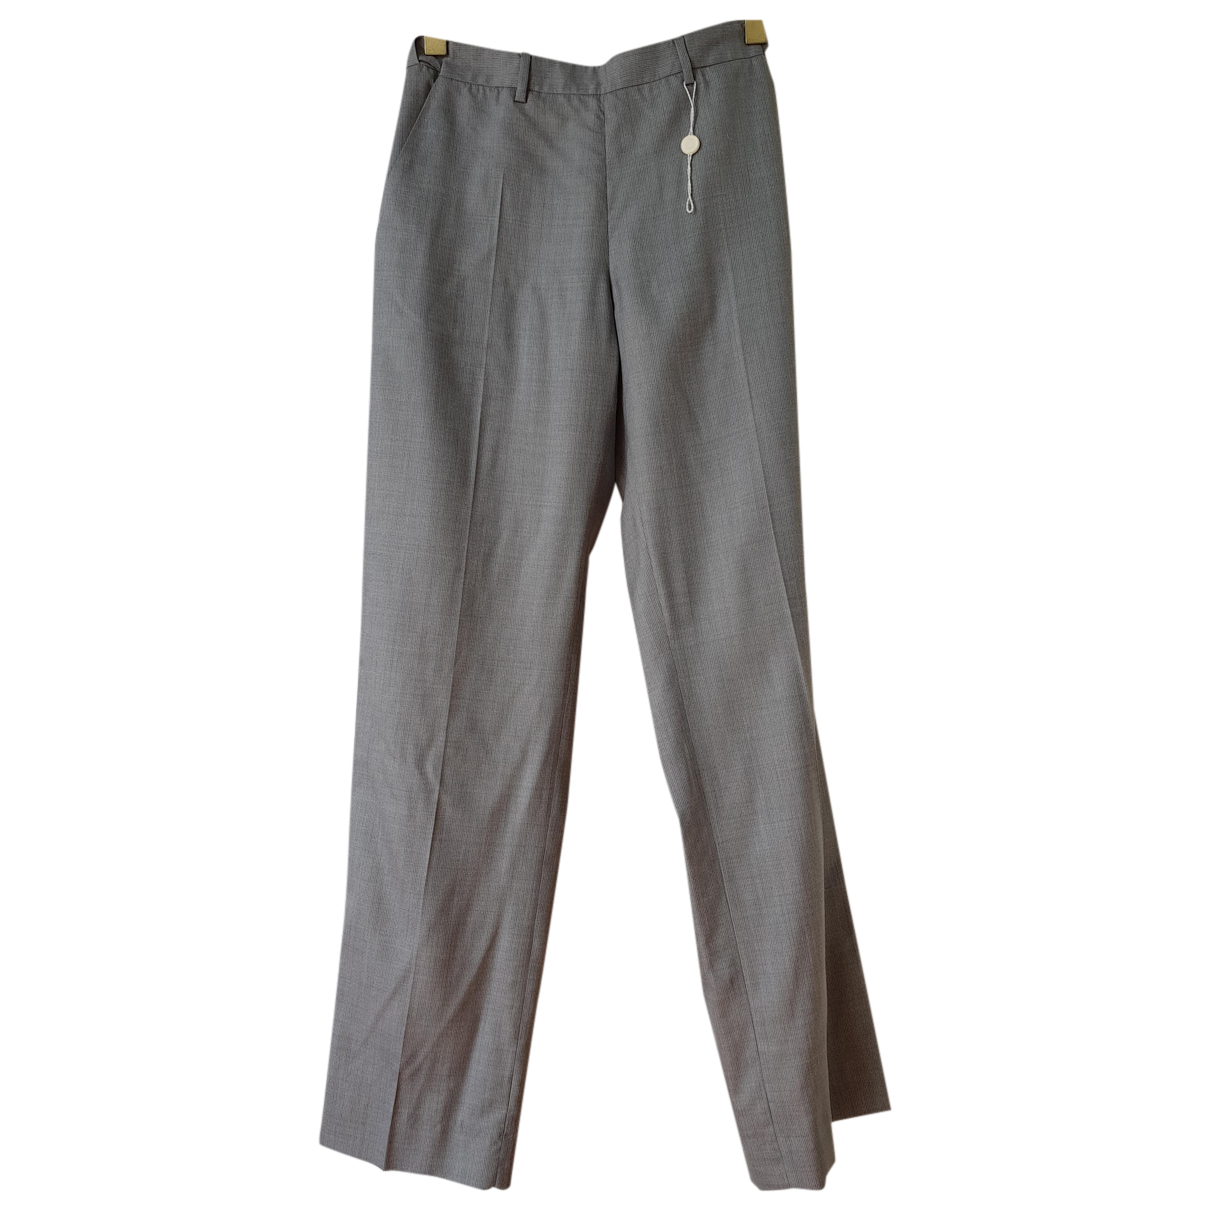 Maison Martin Margiela N Grey Wool Trousers for Women 44 IT